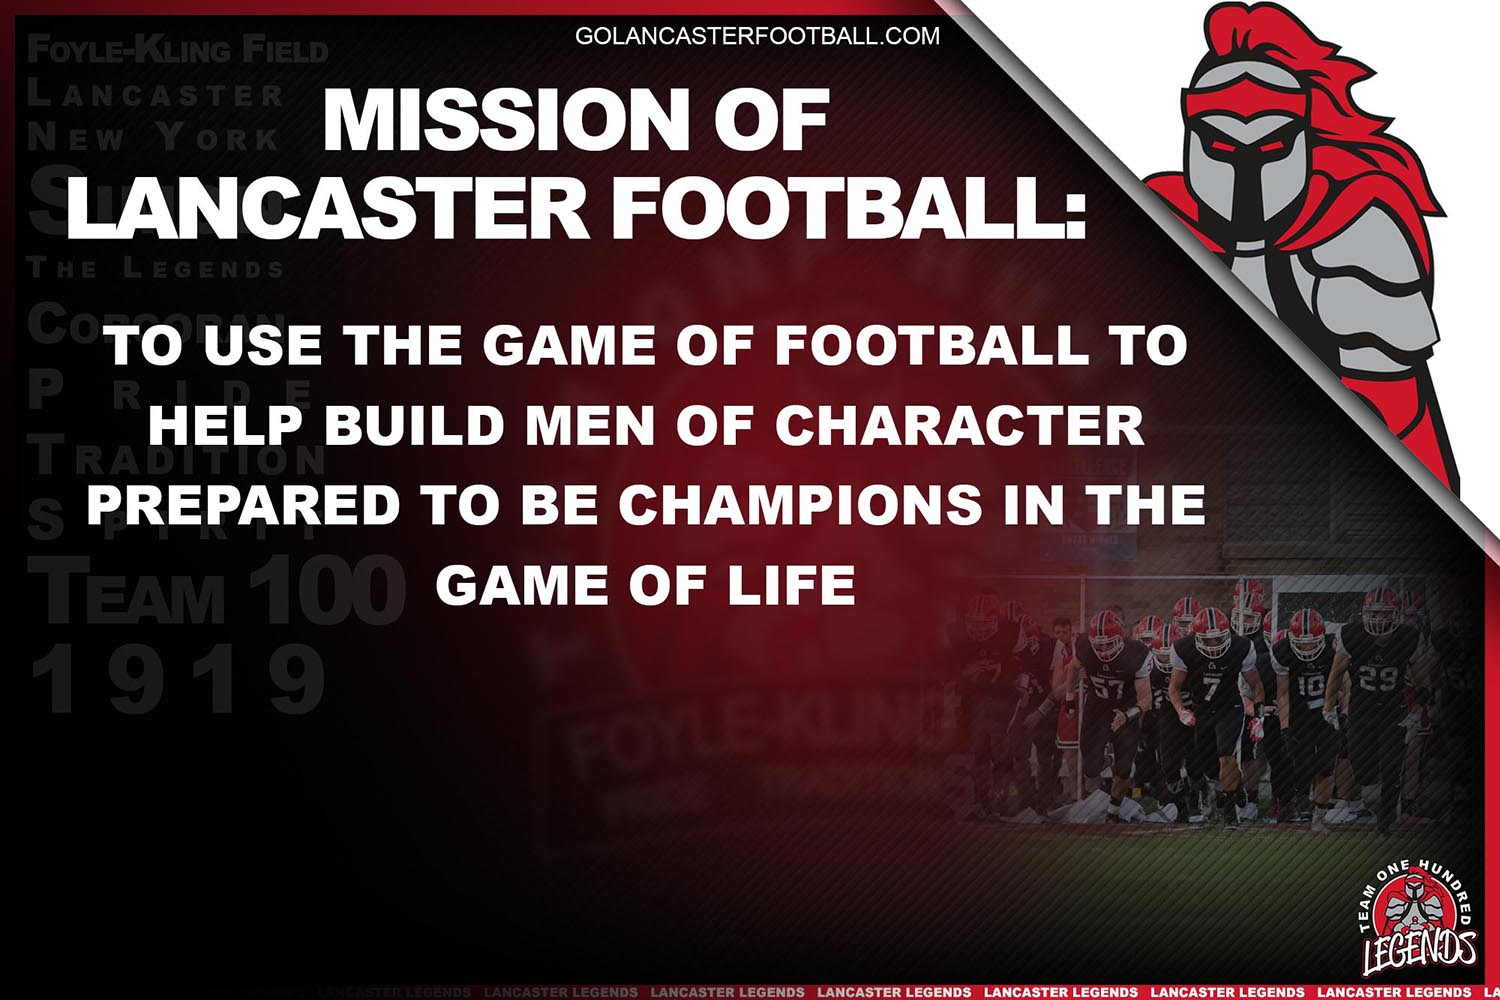 Mission of Lancaster Football: To use the game of football to help build men of character prepared to be champions in the game of life